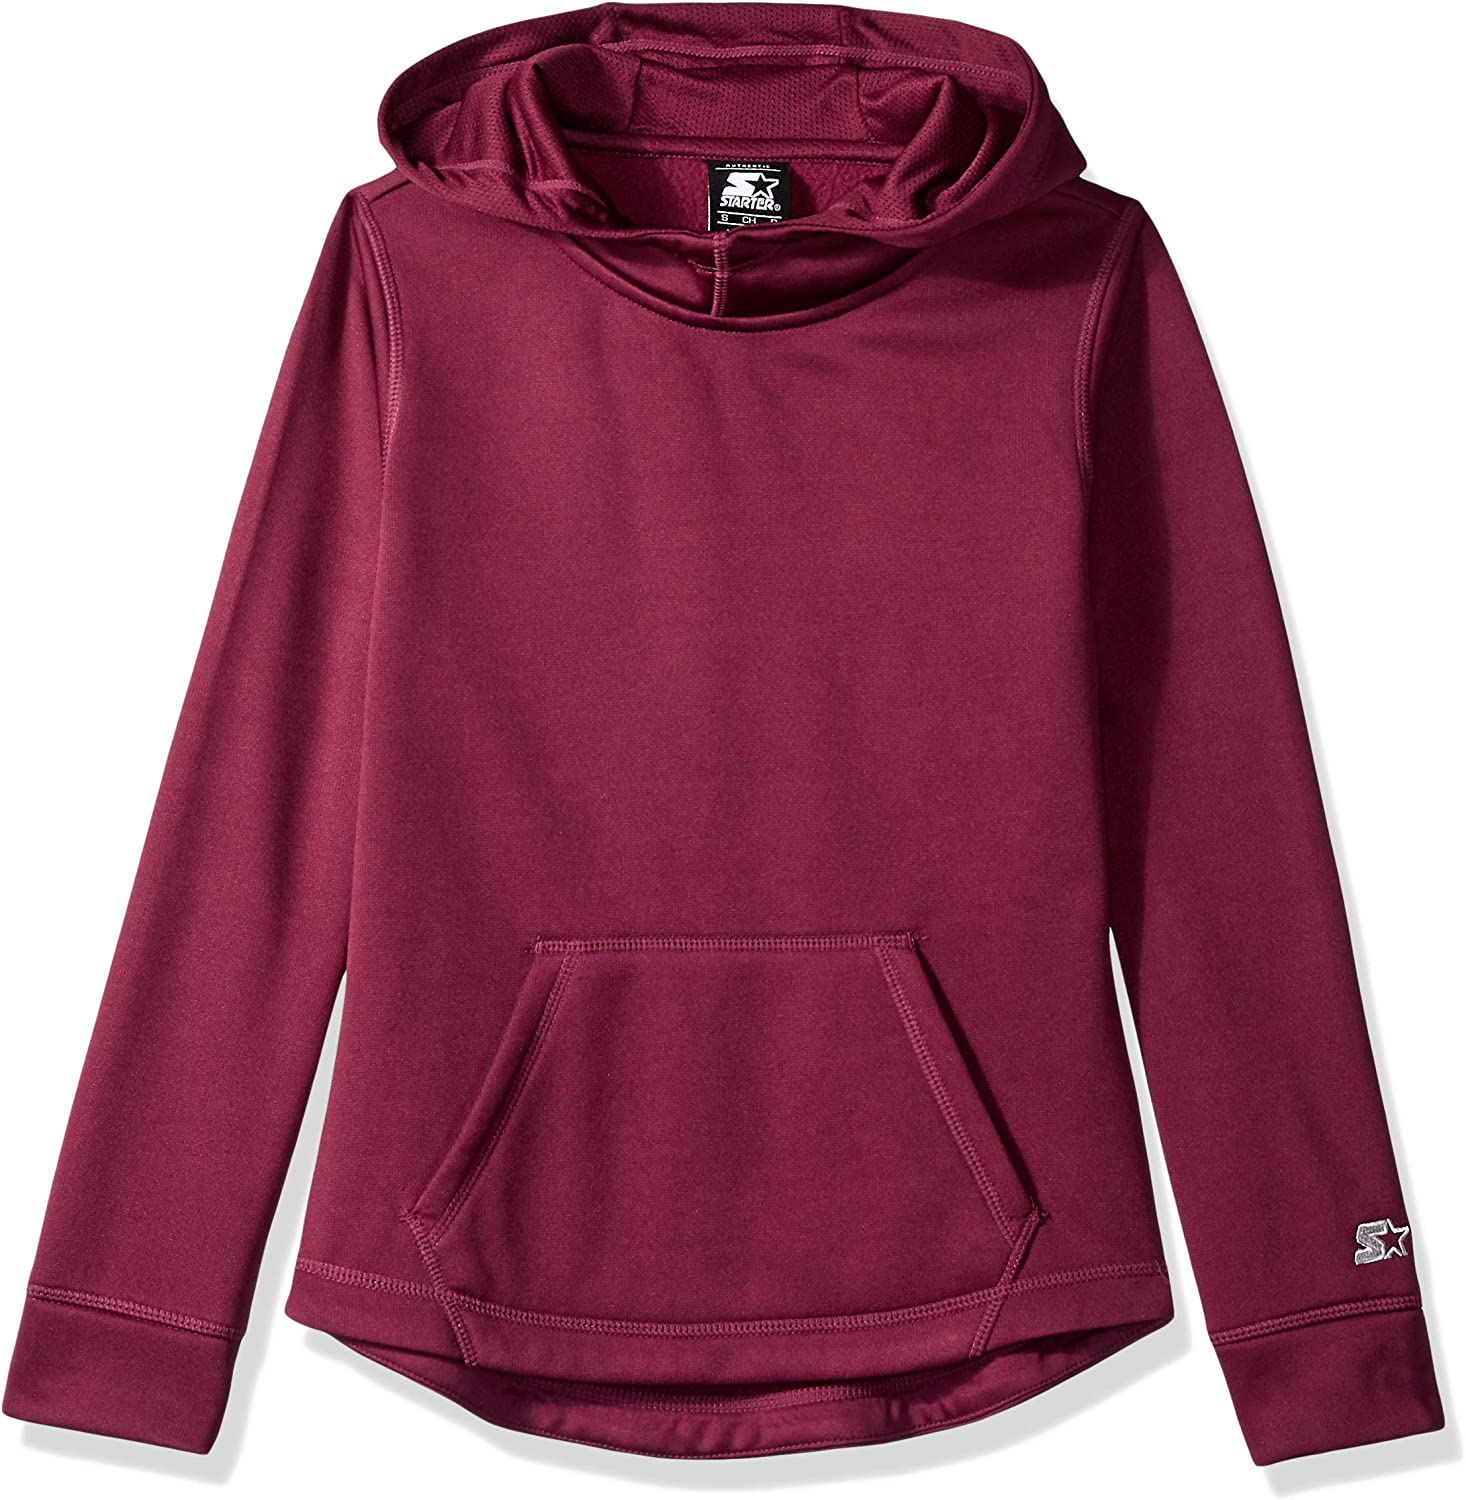 7//8 Starter Girls Solid Zip-Up Hoodie M Exclusive Team Maroon